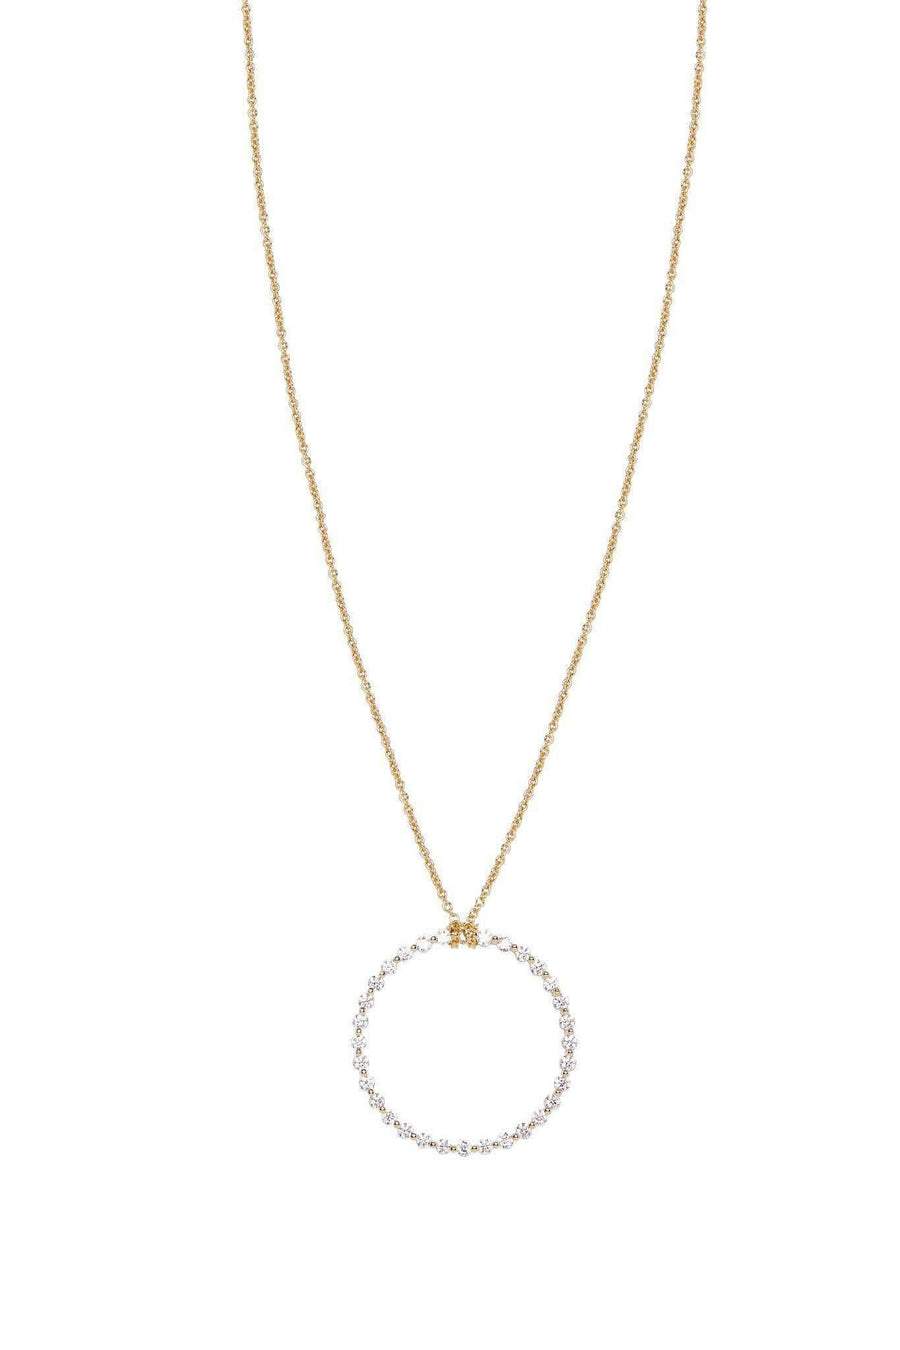 Modernist Diamond Pendant Necklaces Lark and Berry